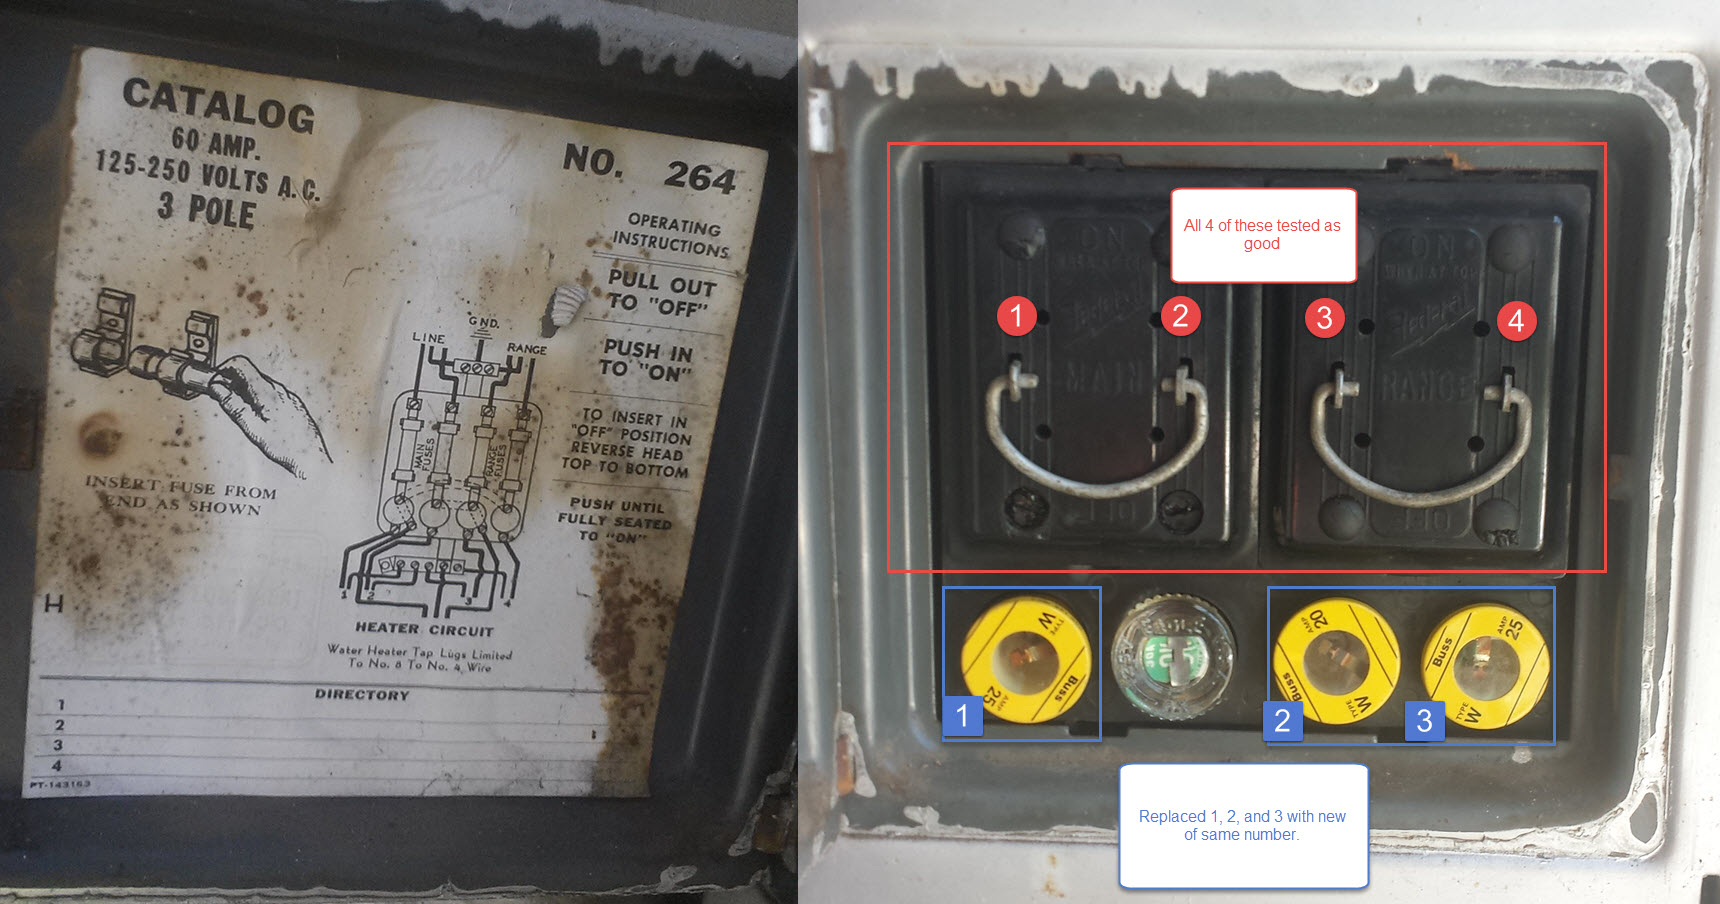 hight resolution of fuse box in detached garage wiring diagram usedfuses in detached garage with no power electricians fuse